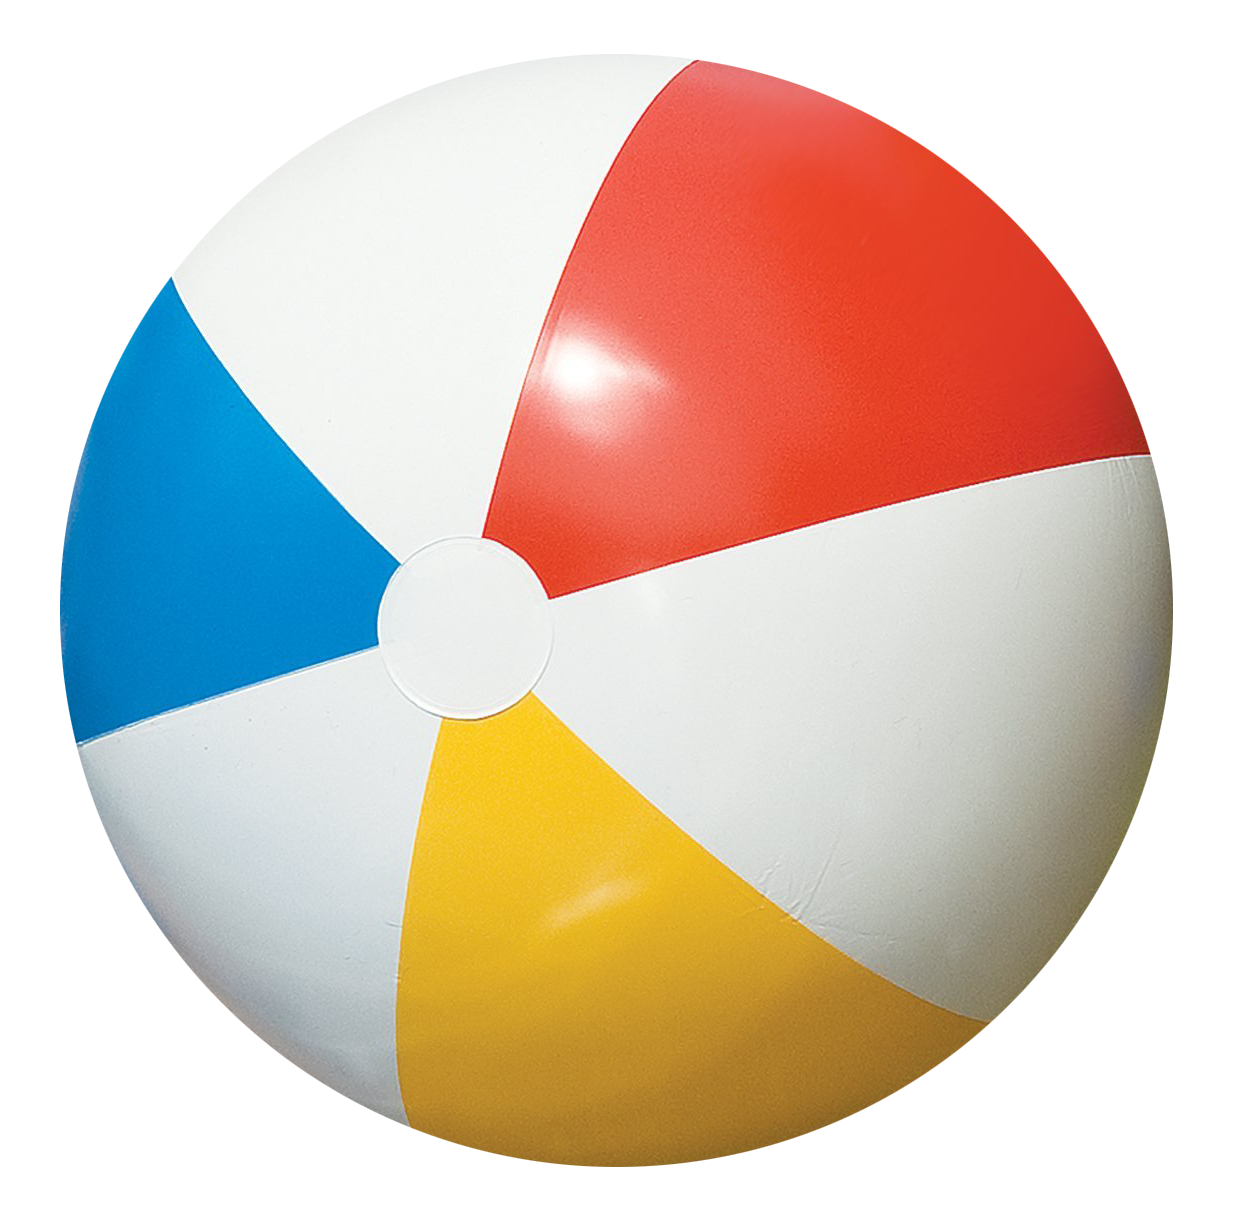 Beach Ball Hd Png 41208 Free Icons And Png Backgrounds